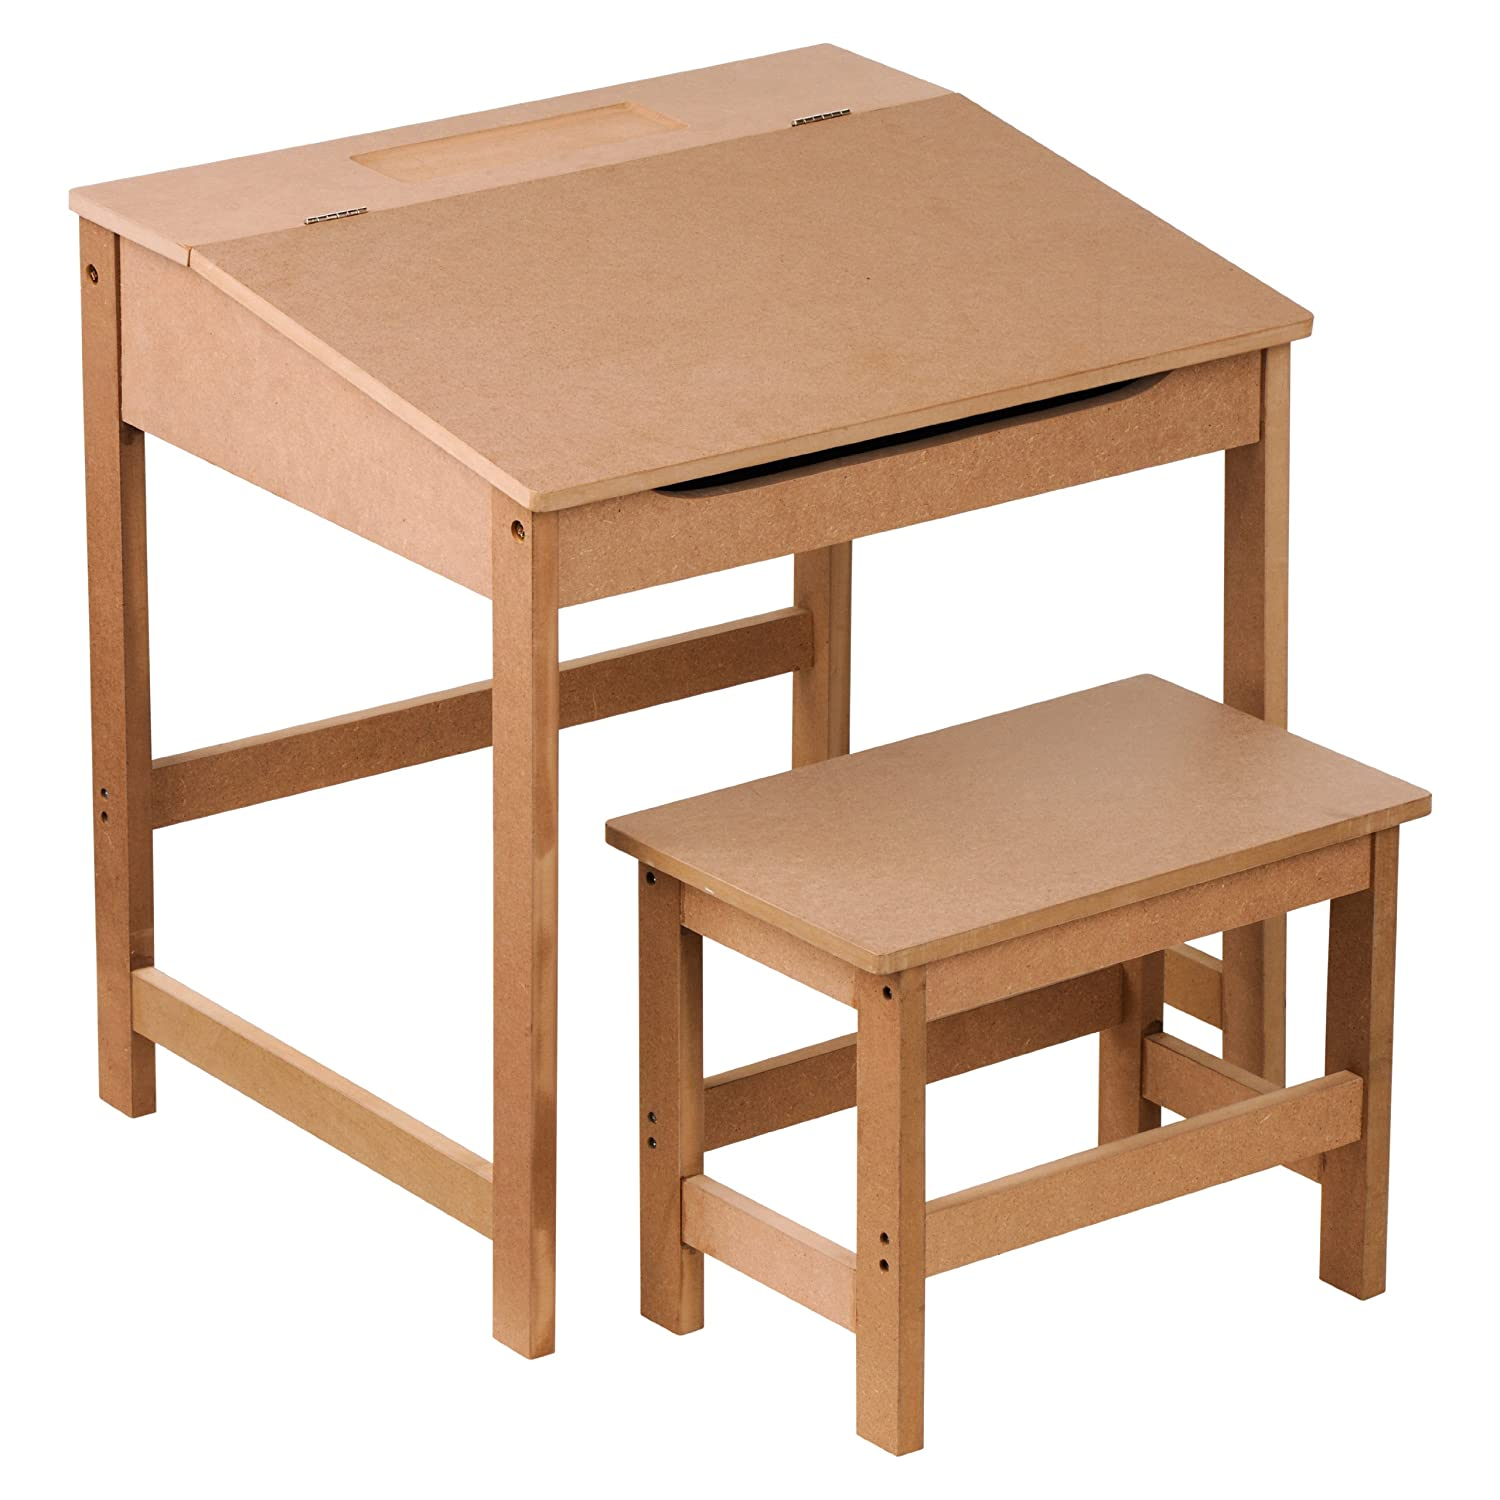 Premier Housewares Children s Desk and Stool Set Natural Amazon